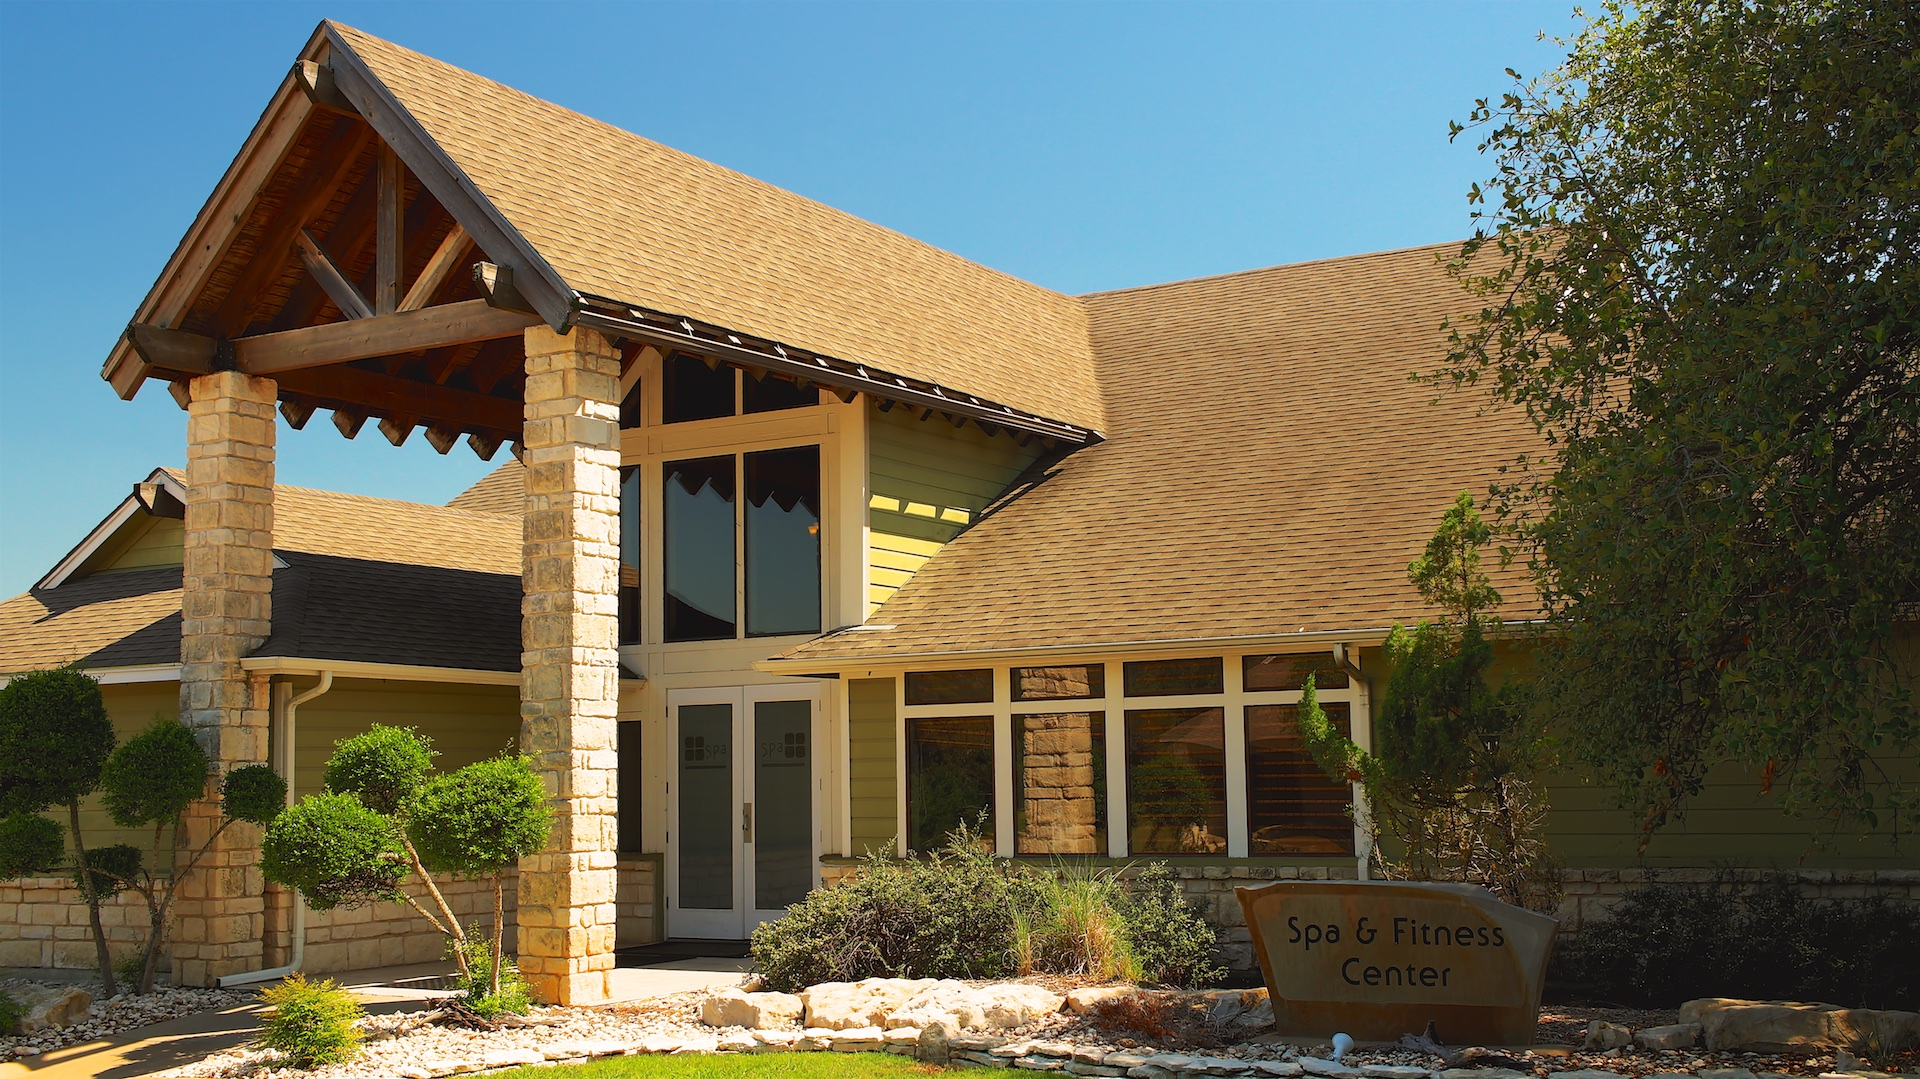 Photo of the White Bluff Spa and Fitness Center